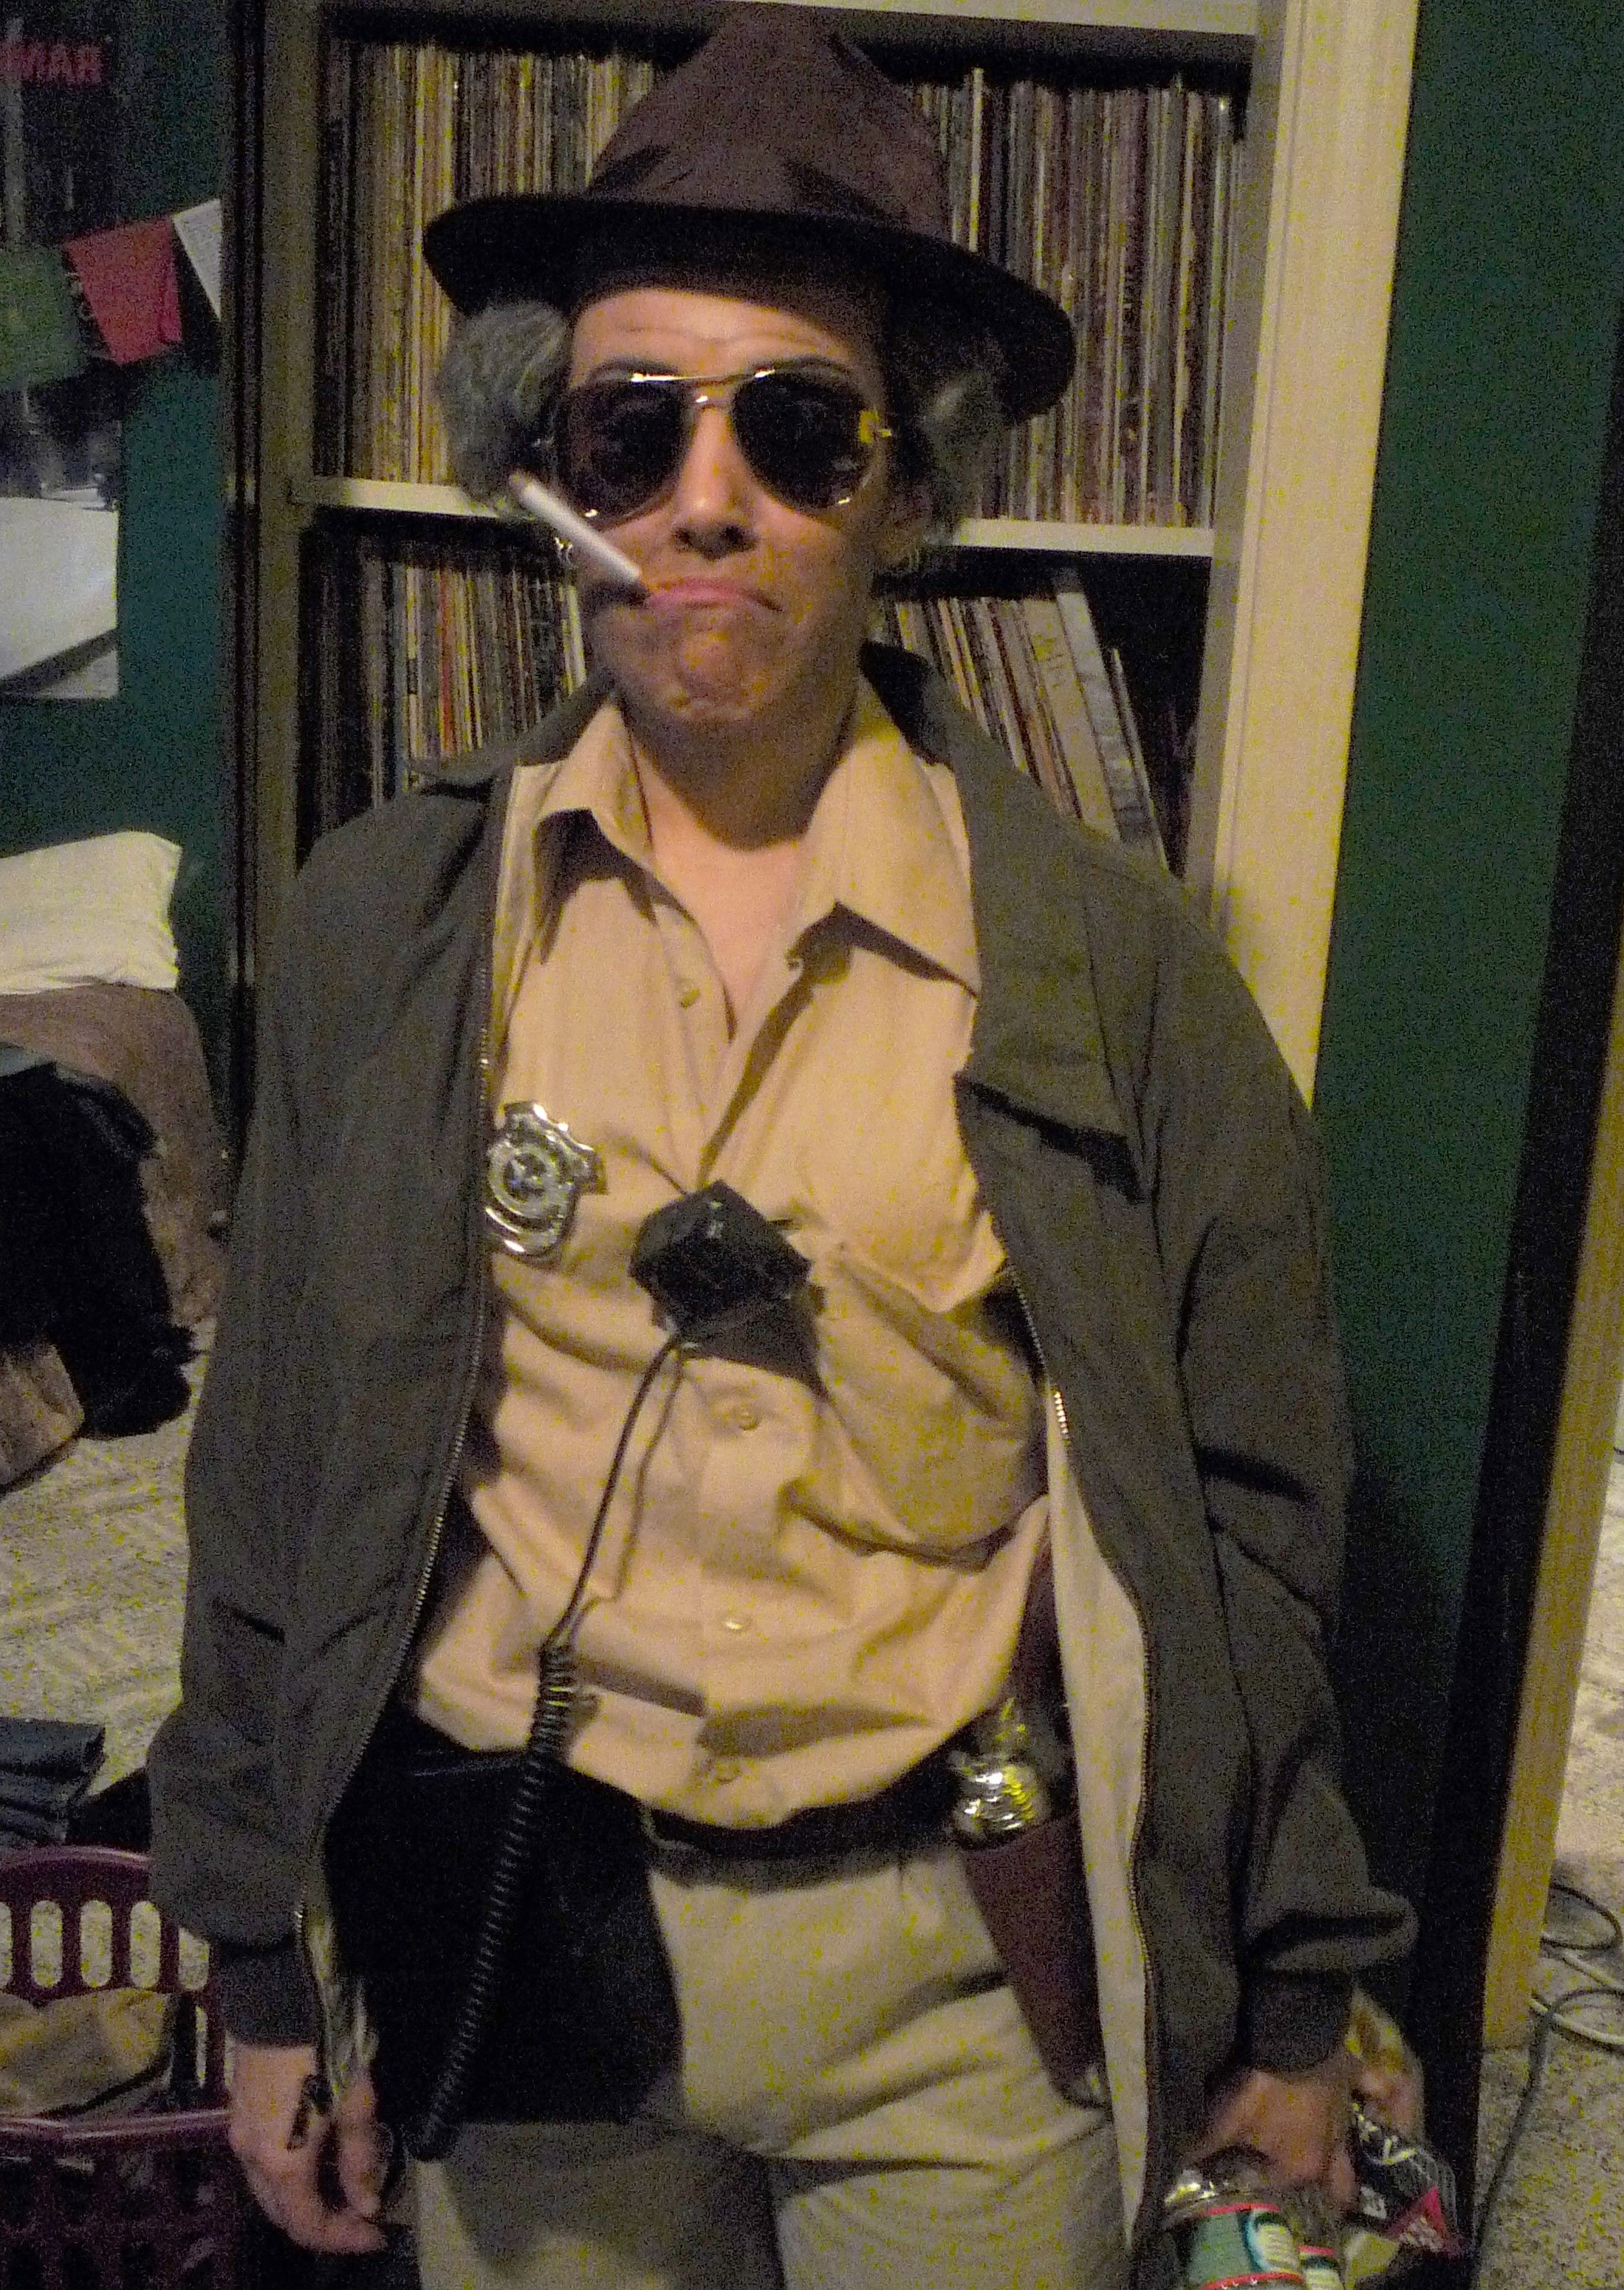 diy costume jim lahey trailer park boys lady looks like a dude - Halloween Trailers